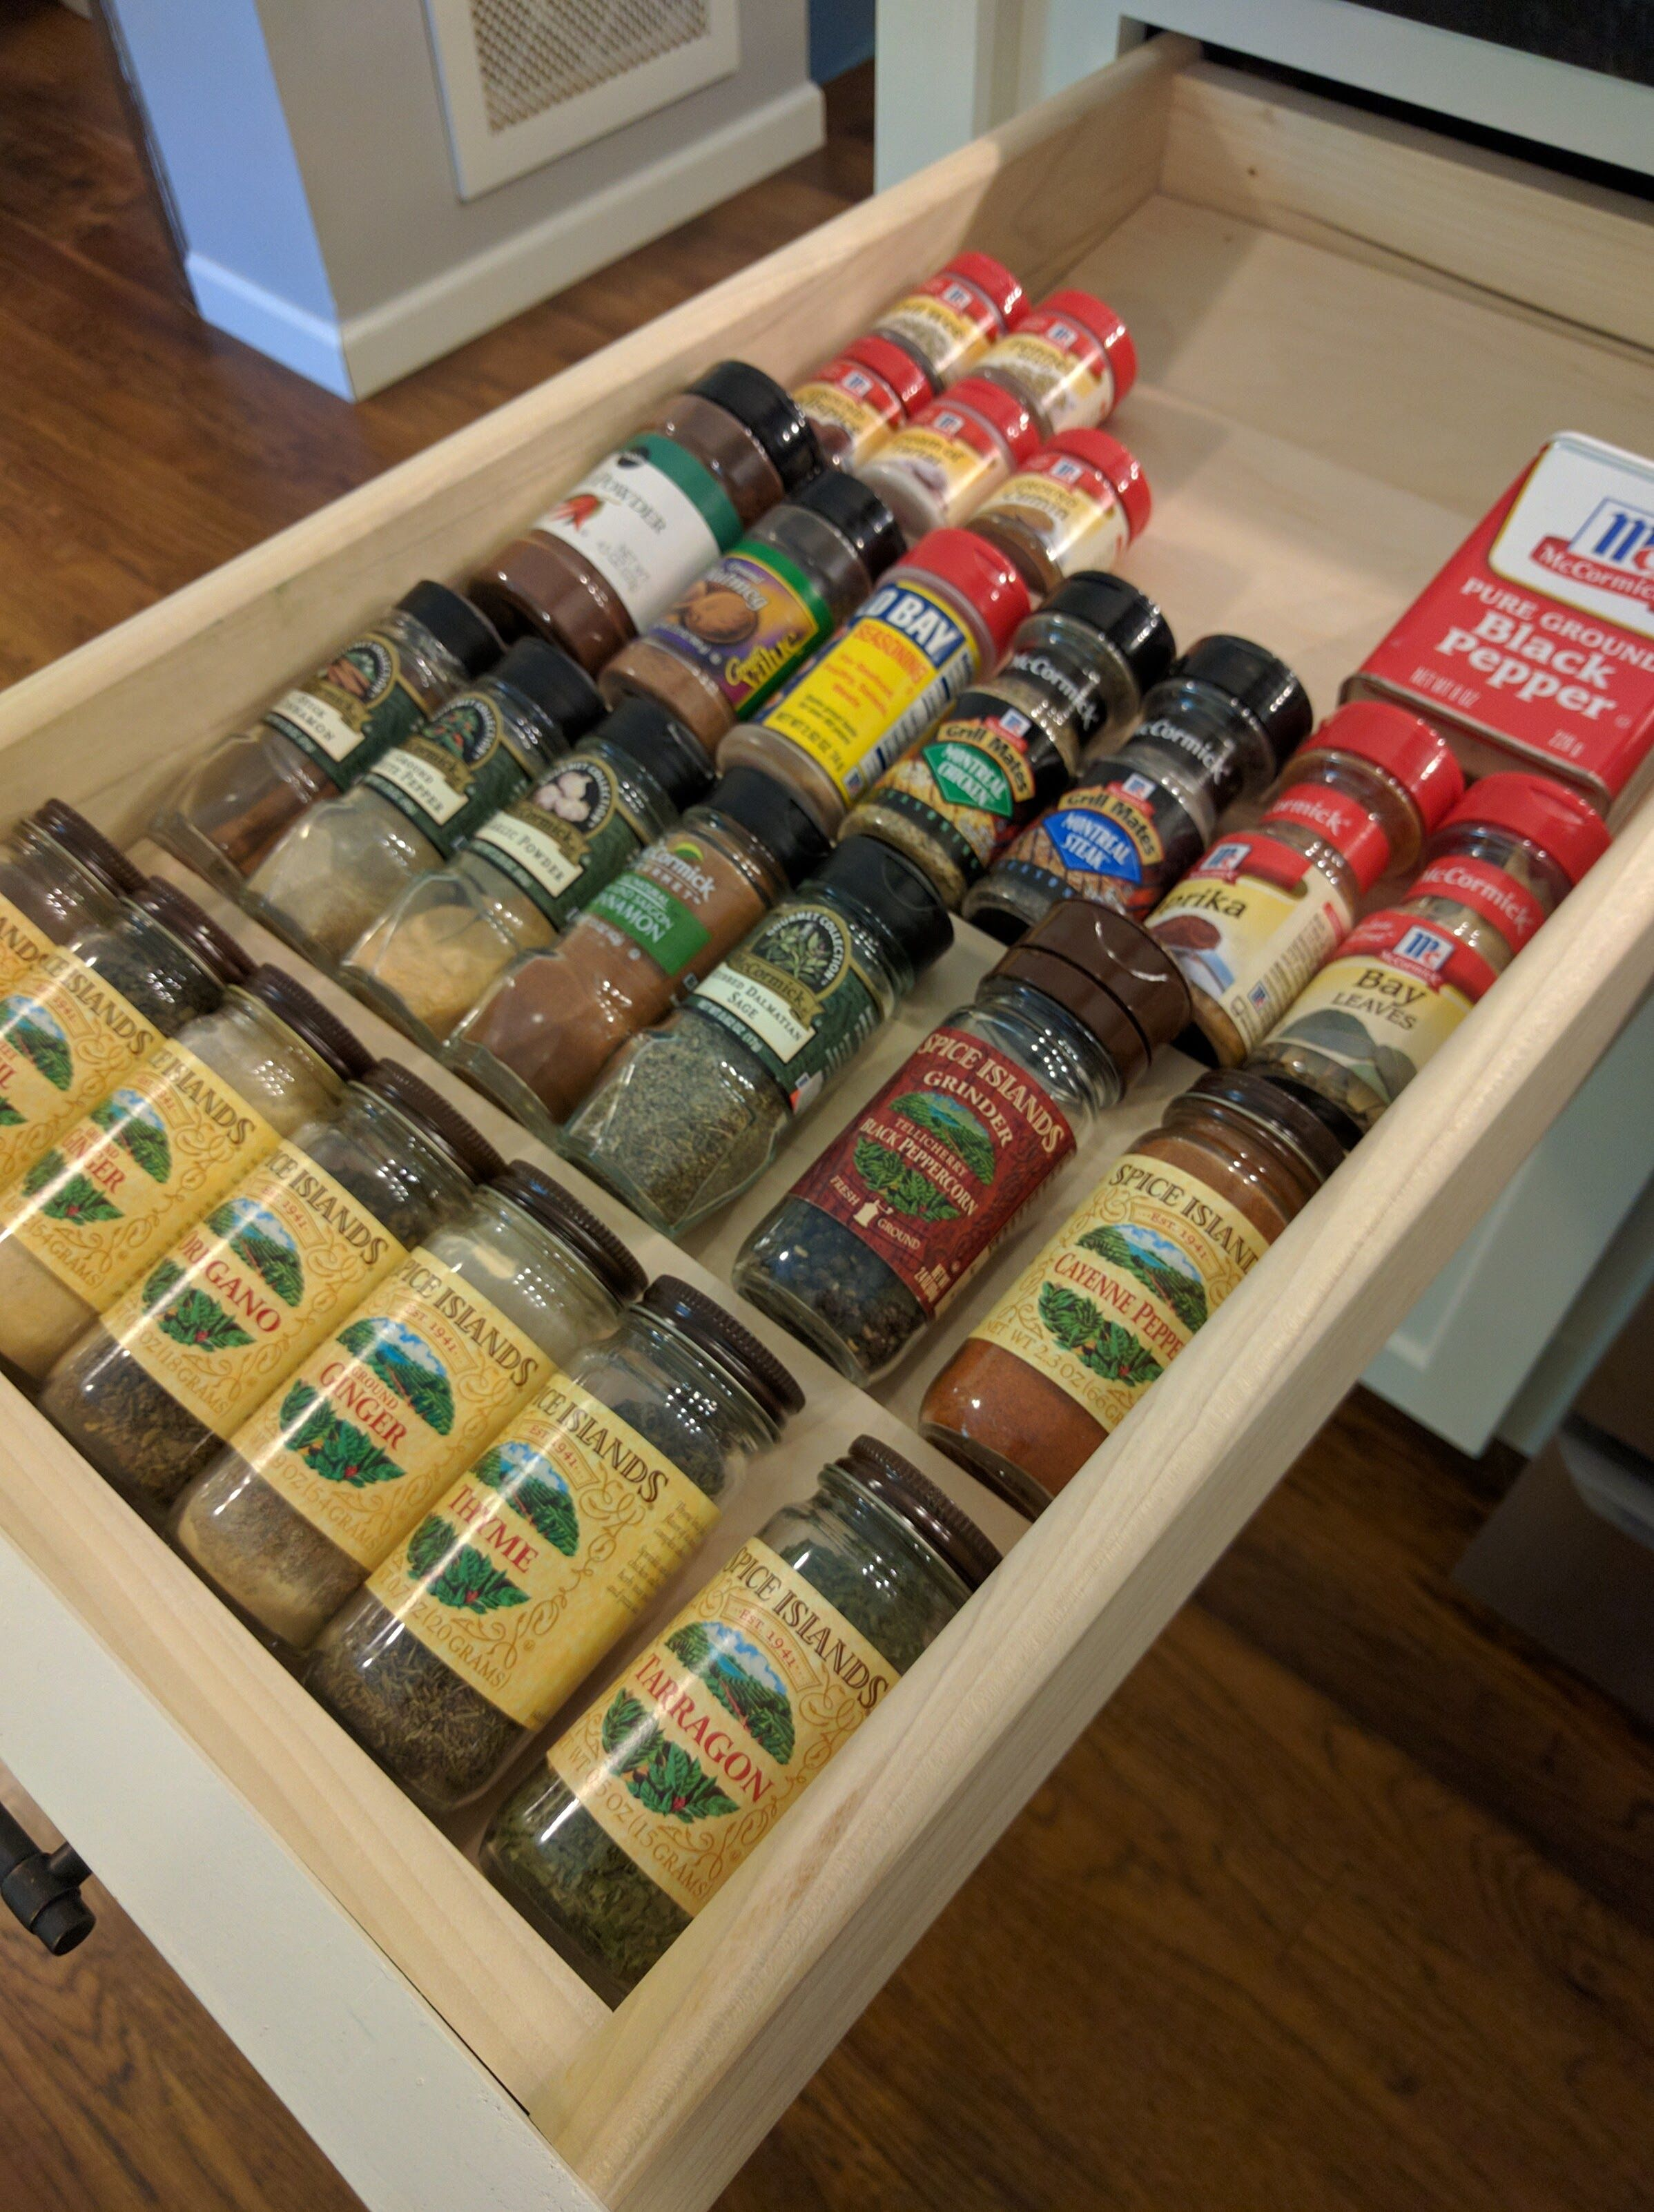 Spice drawer inserts quick free and awesome do it yourself spice drawer inserts quick free and awesome do it yourself home projects solutioingenieria Image collections